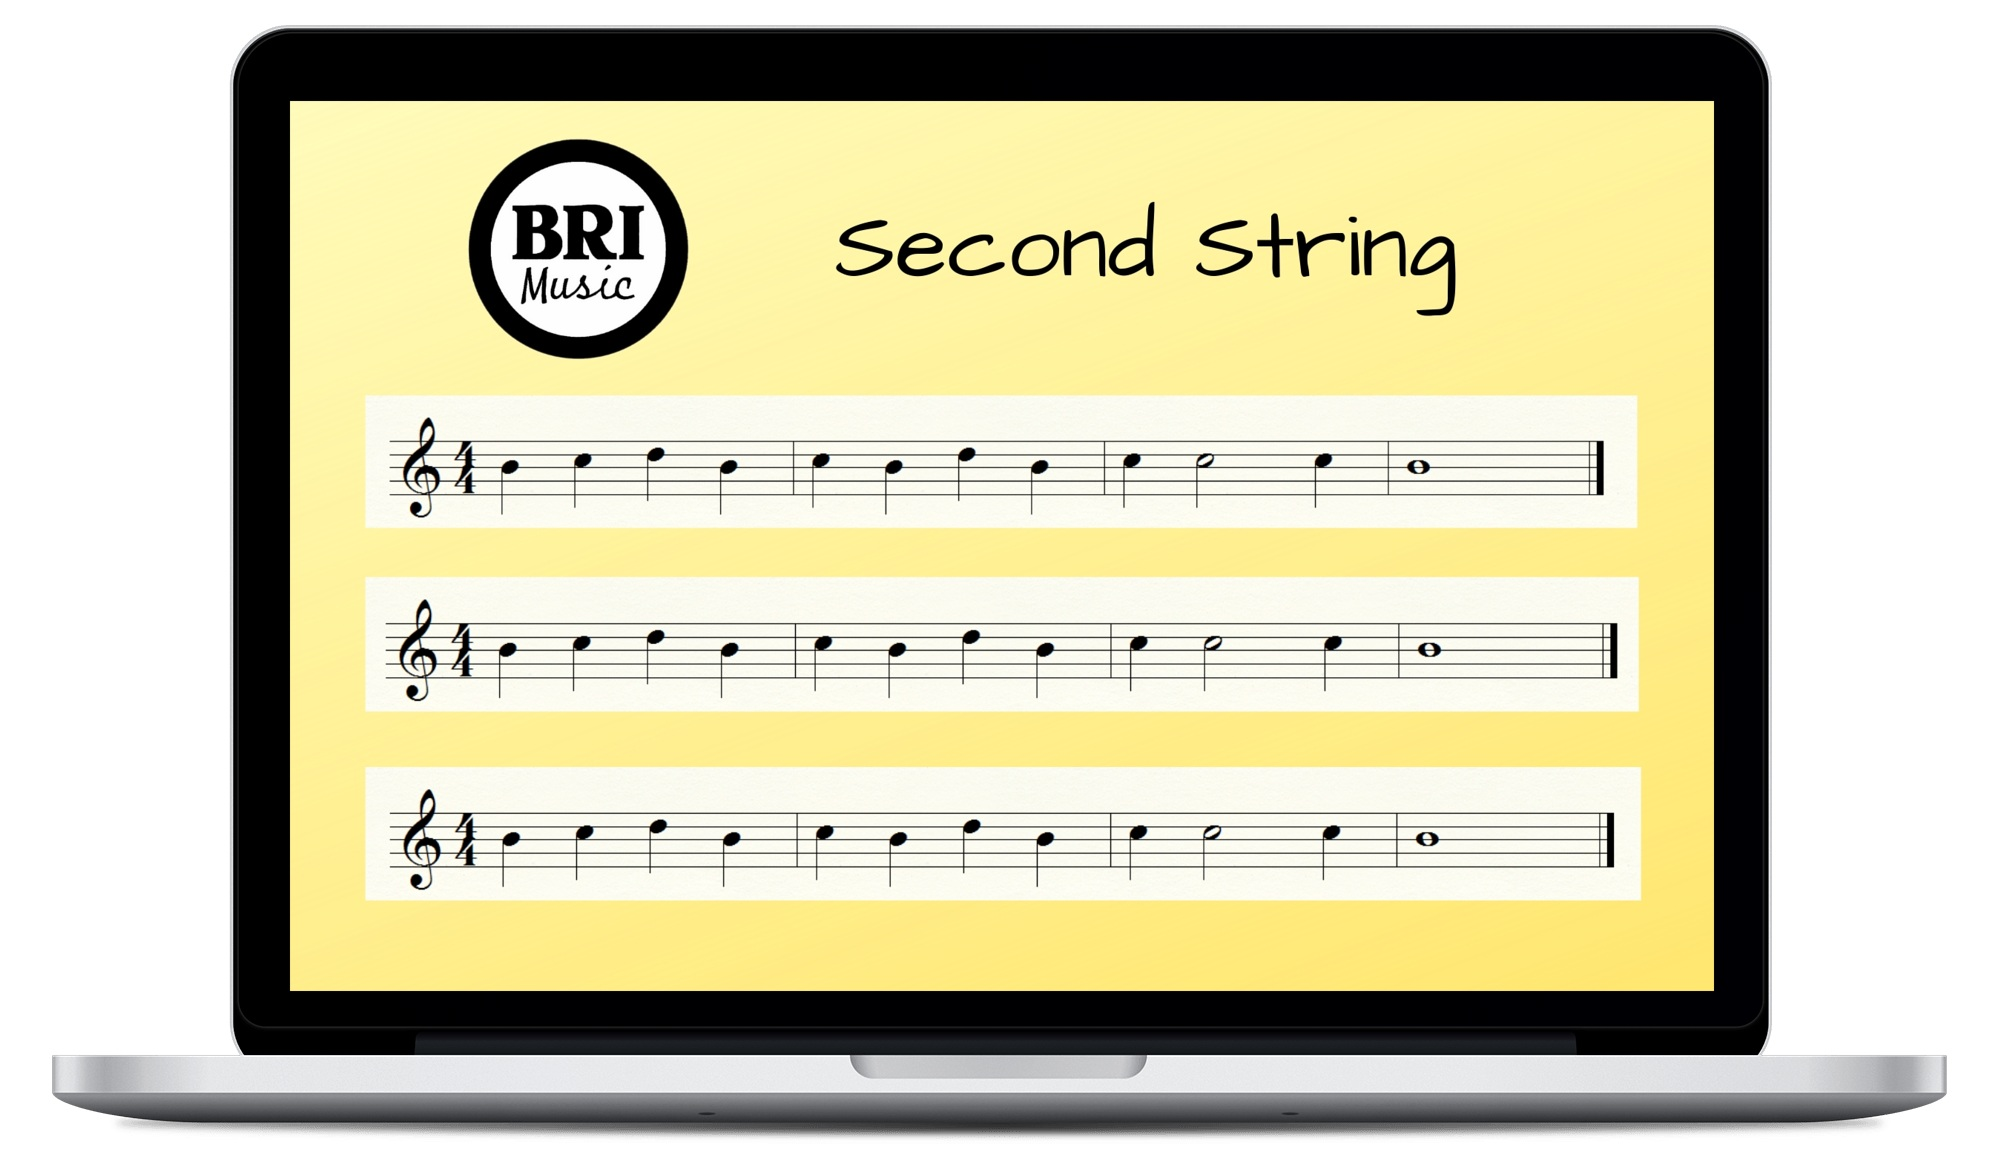 Online Lessons - Bri has created a way for parents and kids to take music lessons together online! This is an option for those who don't live in Tehachapi, are looking for a more flexible schedule, or want to learn music with your kids.